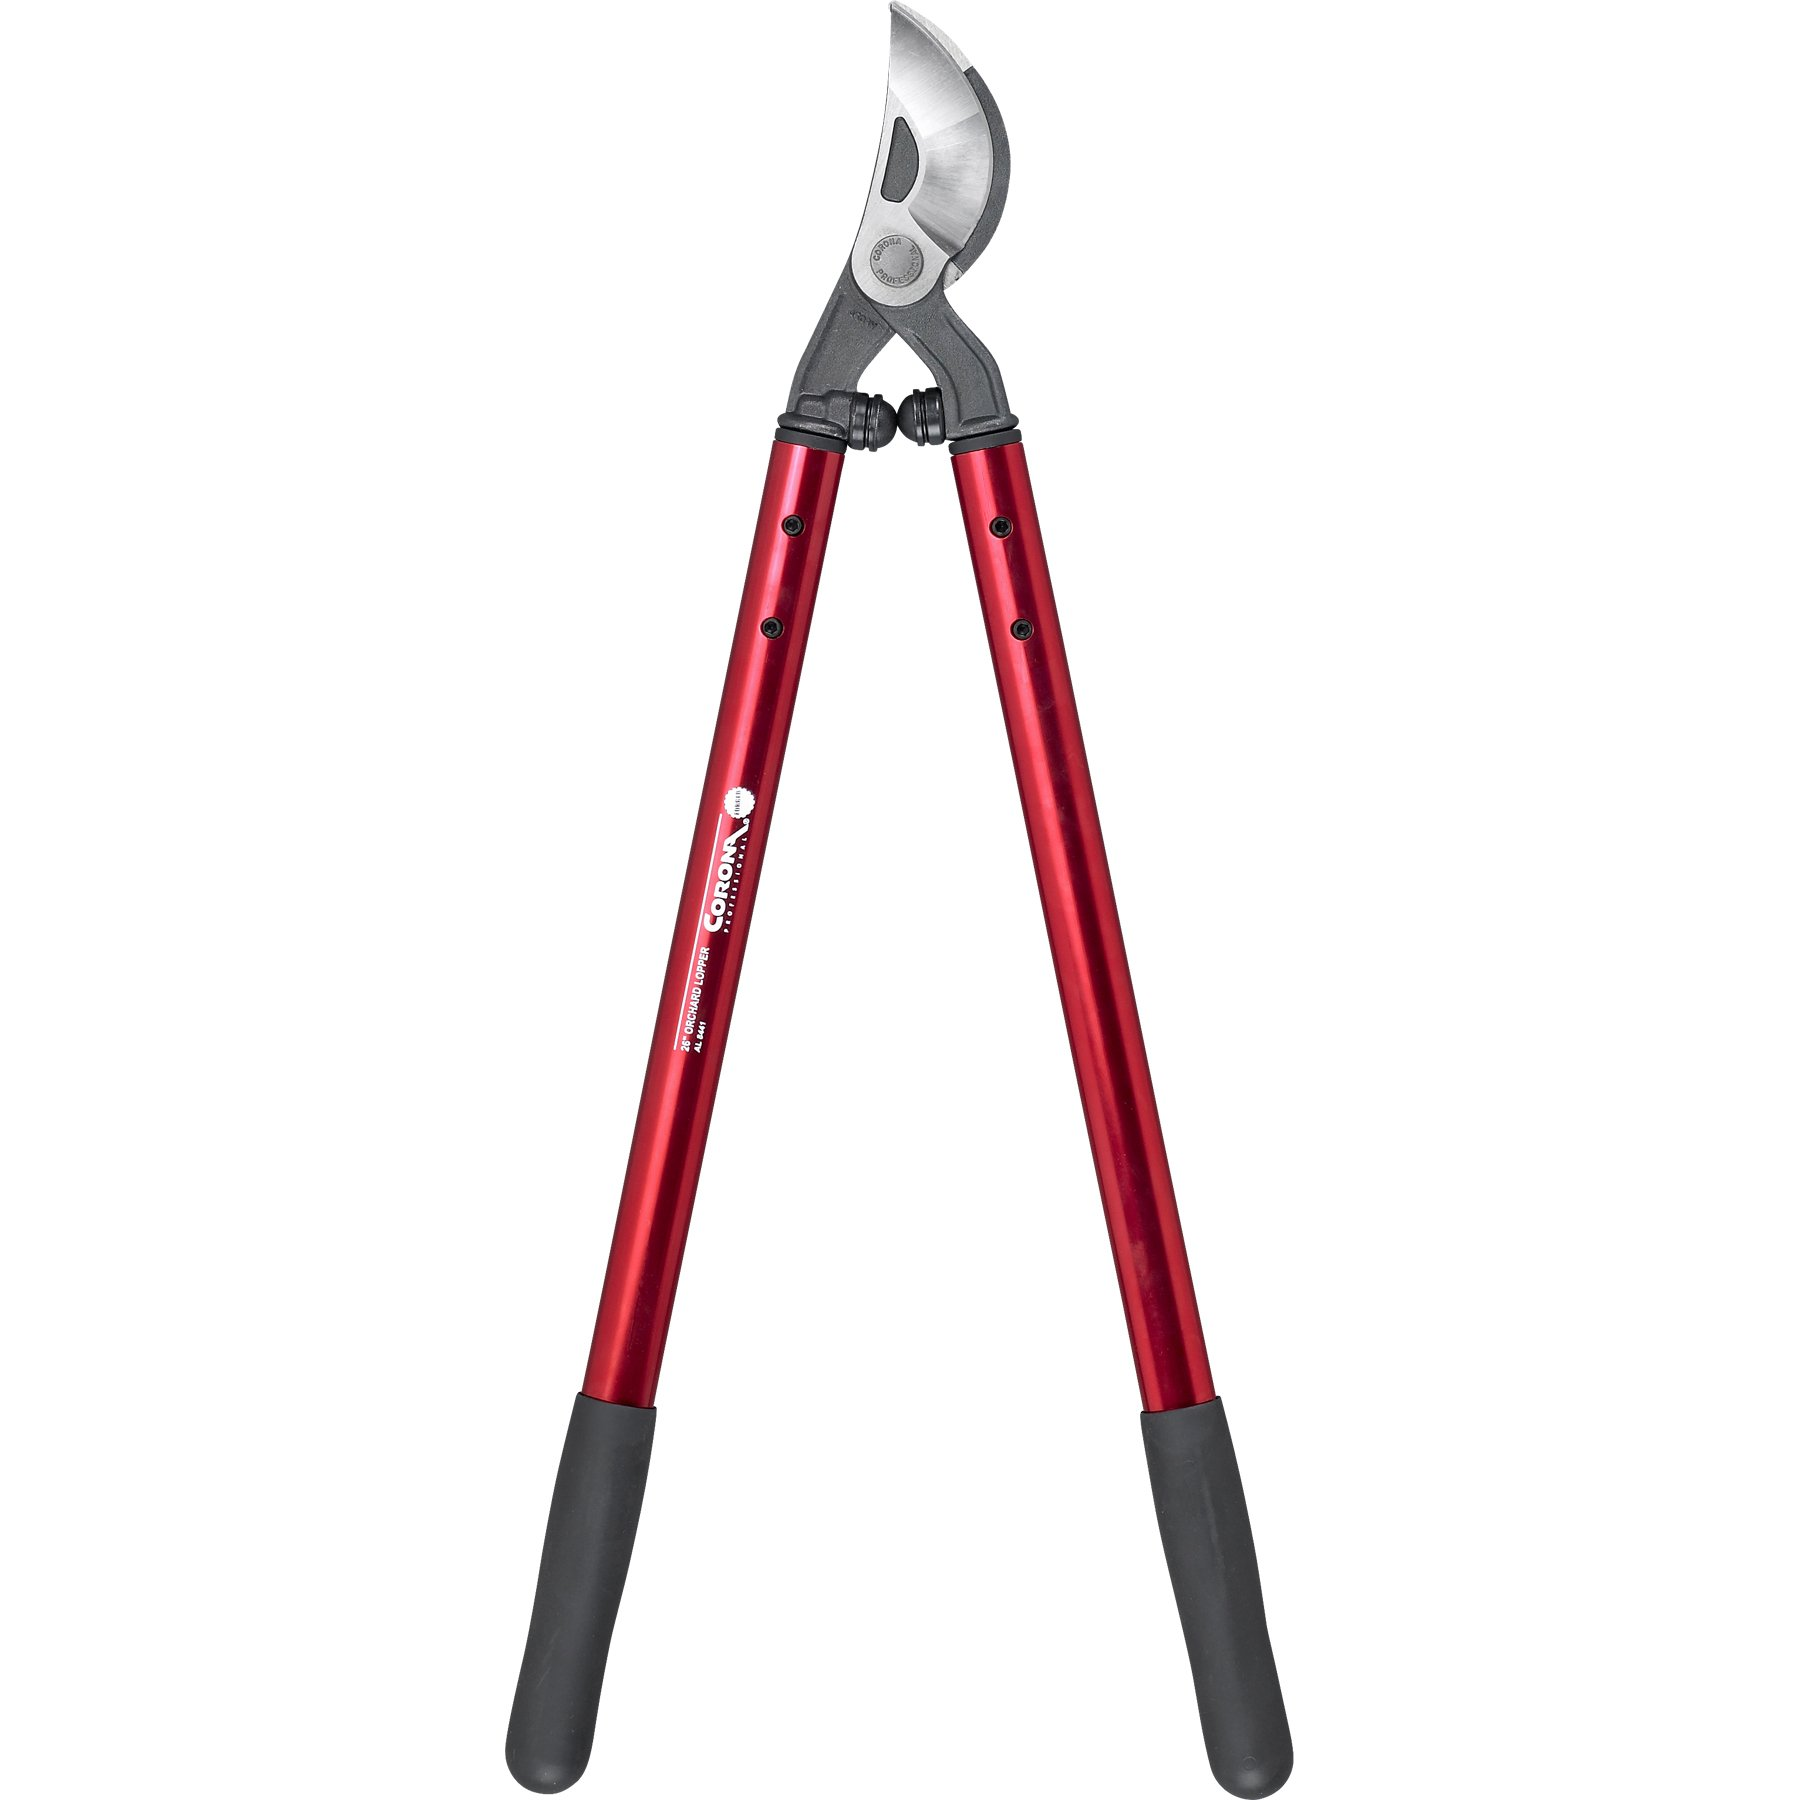 Corona AL 8442 High-Performance Orchard Lopper, 26-Inch